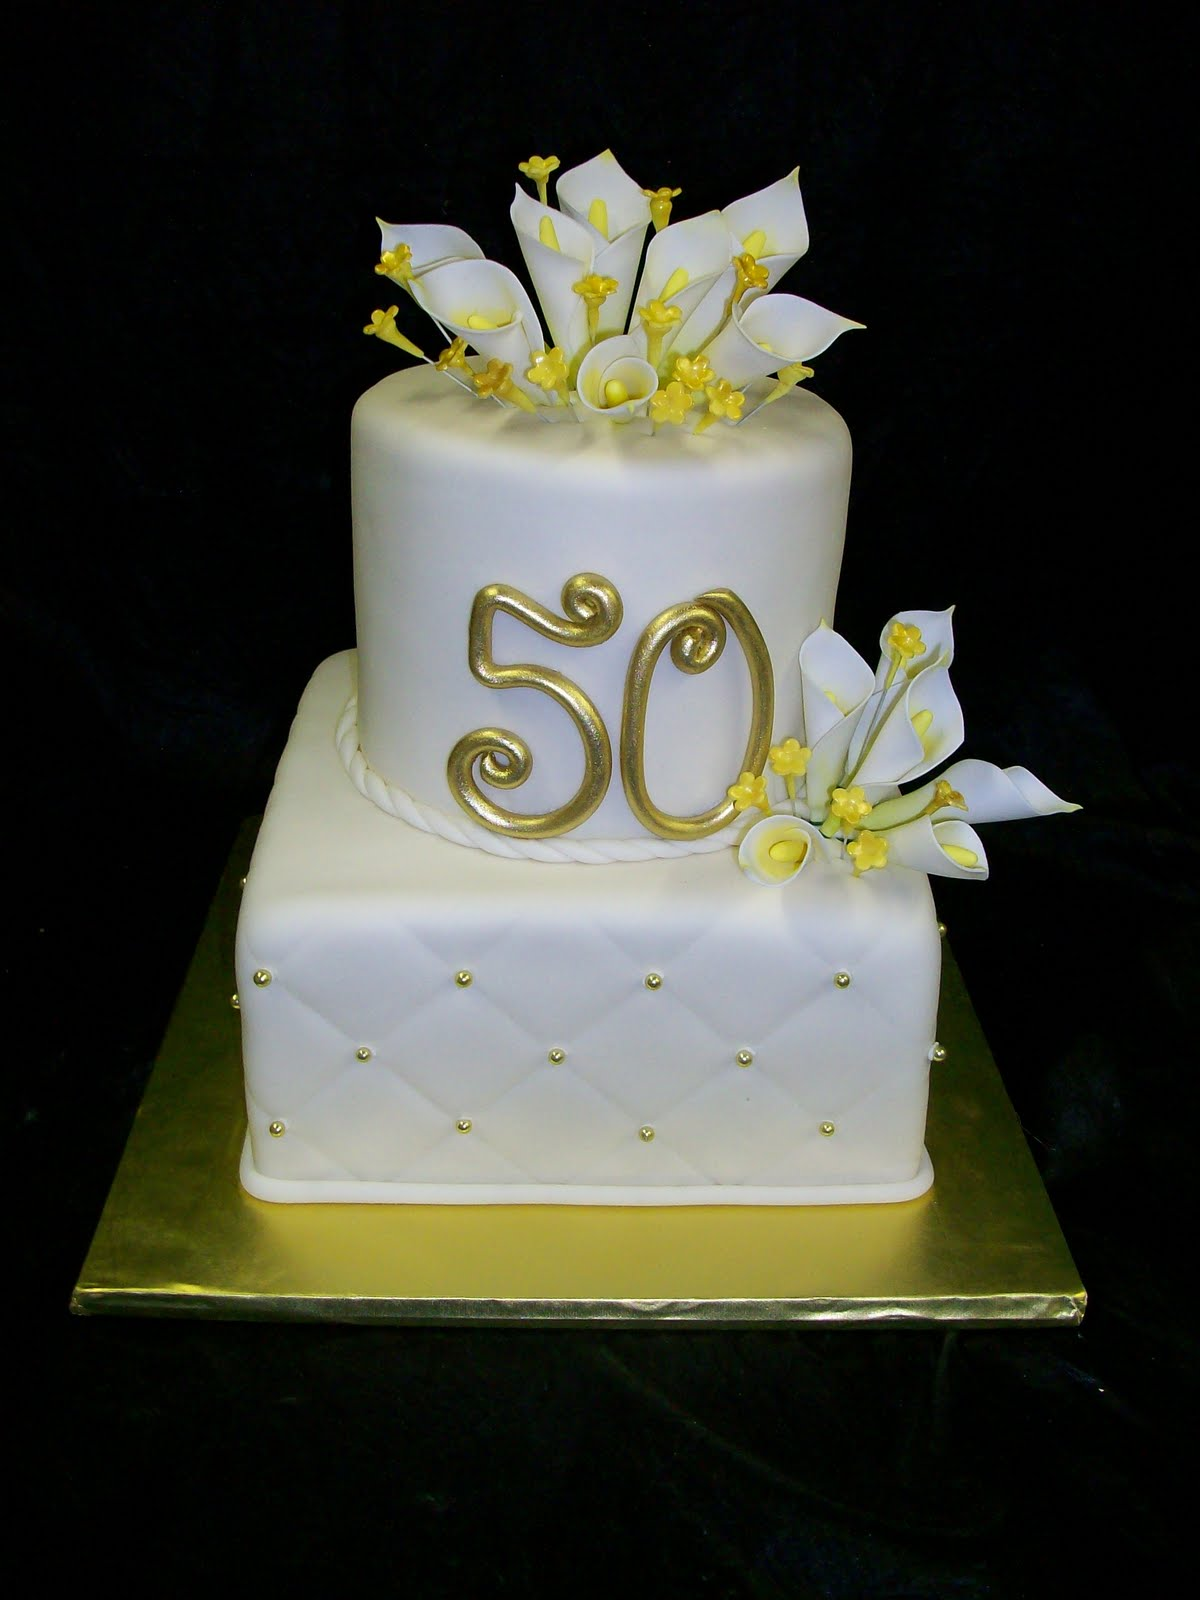 Sophonie\'s blog: 50th wedding anniversary cakes